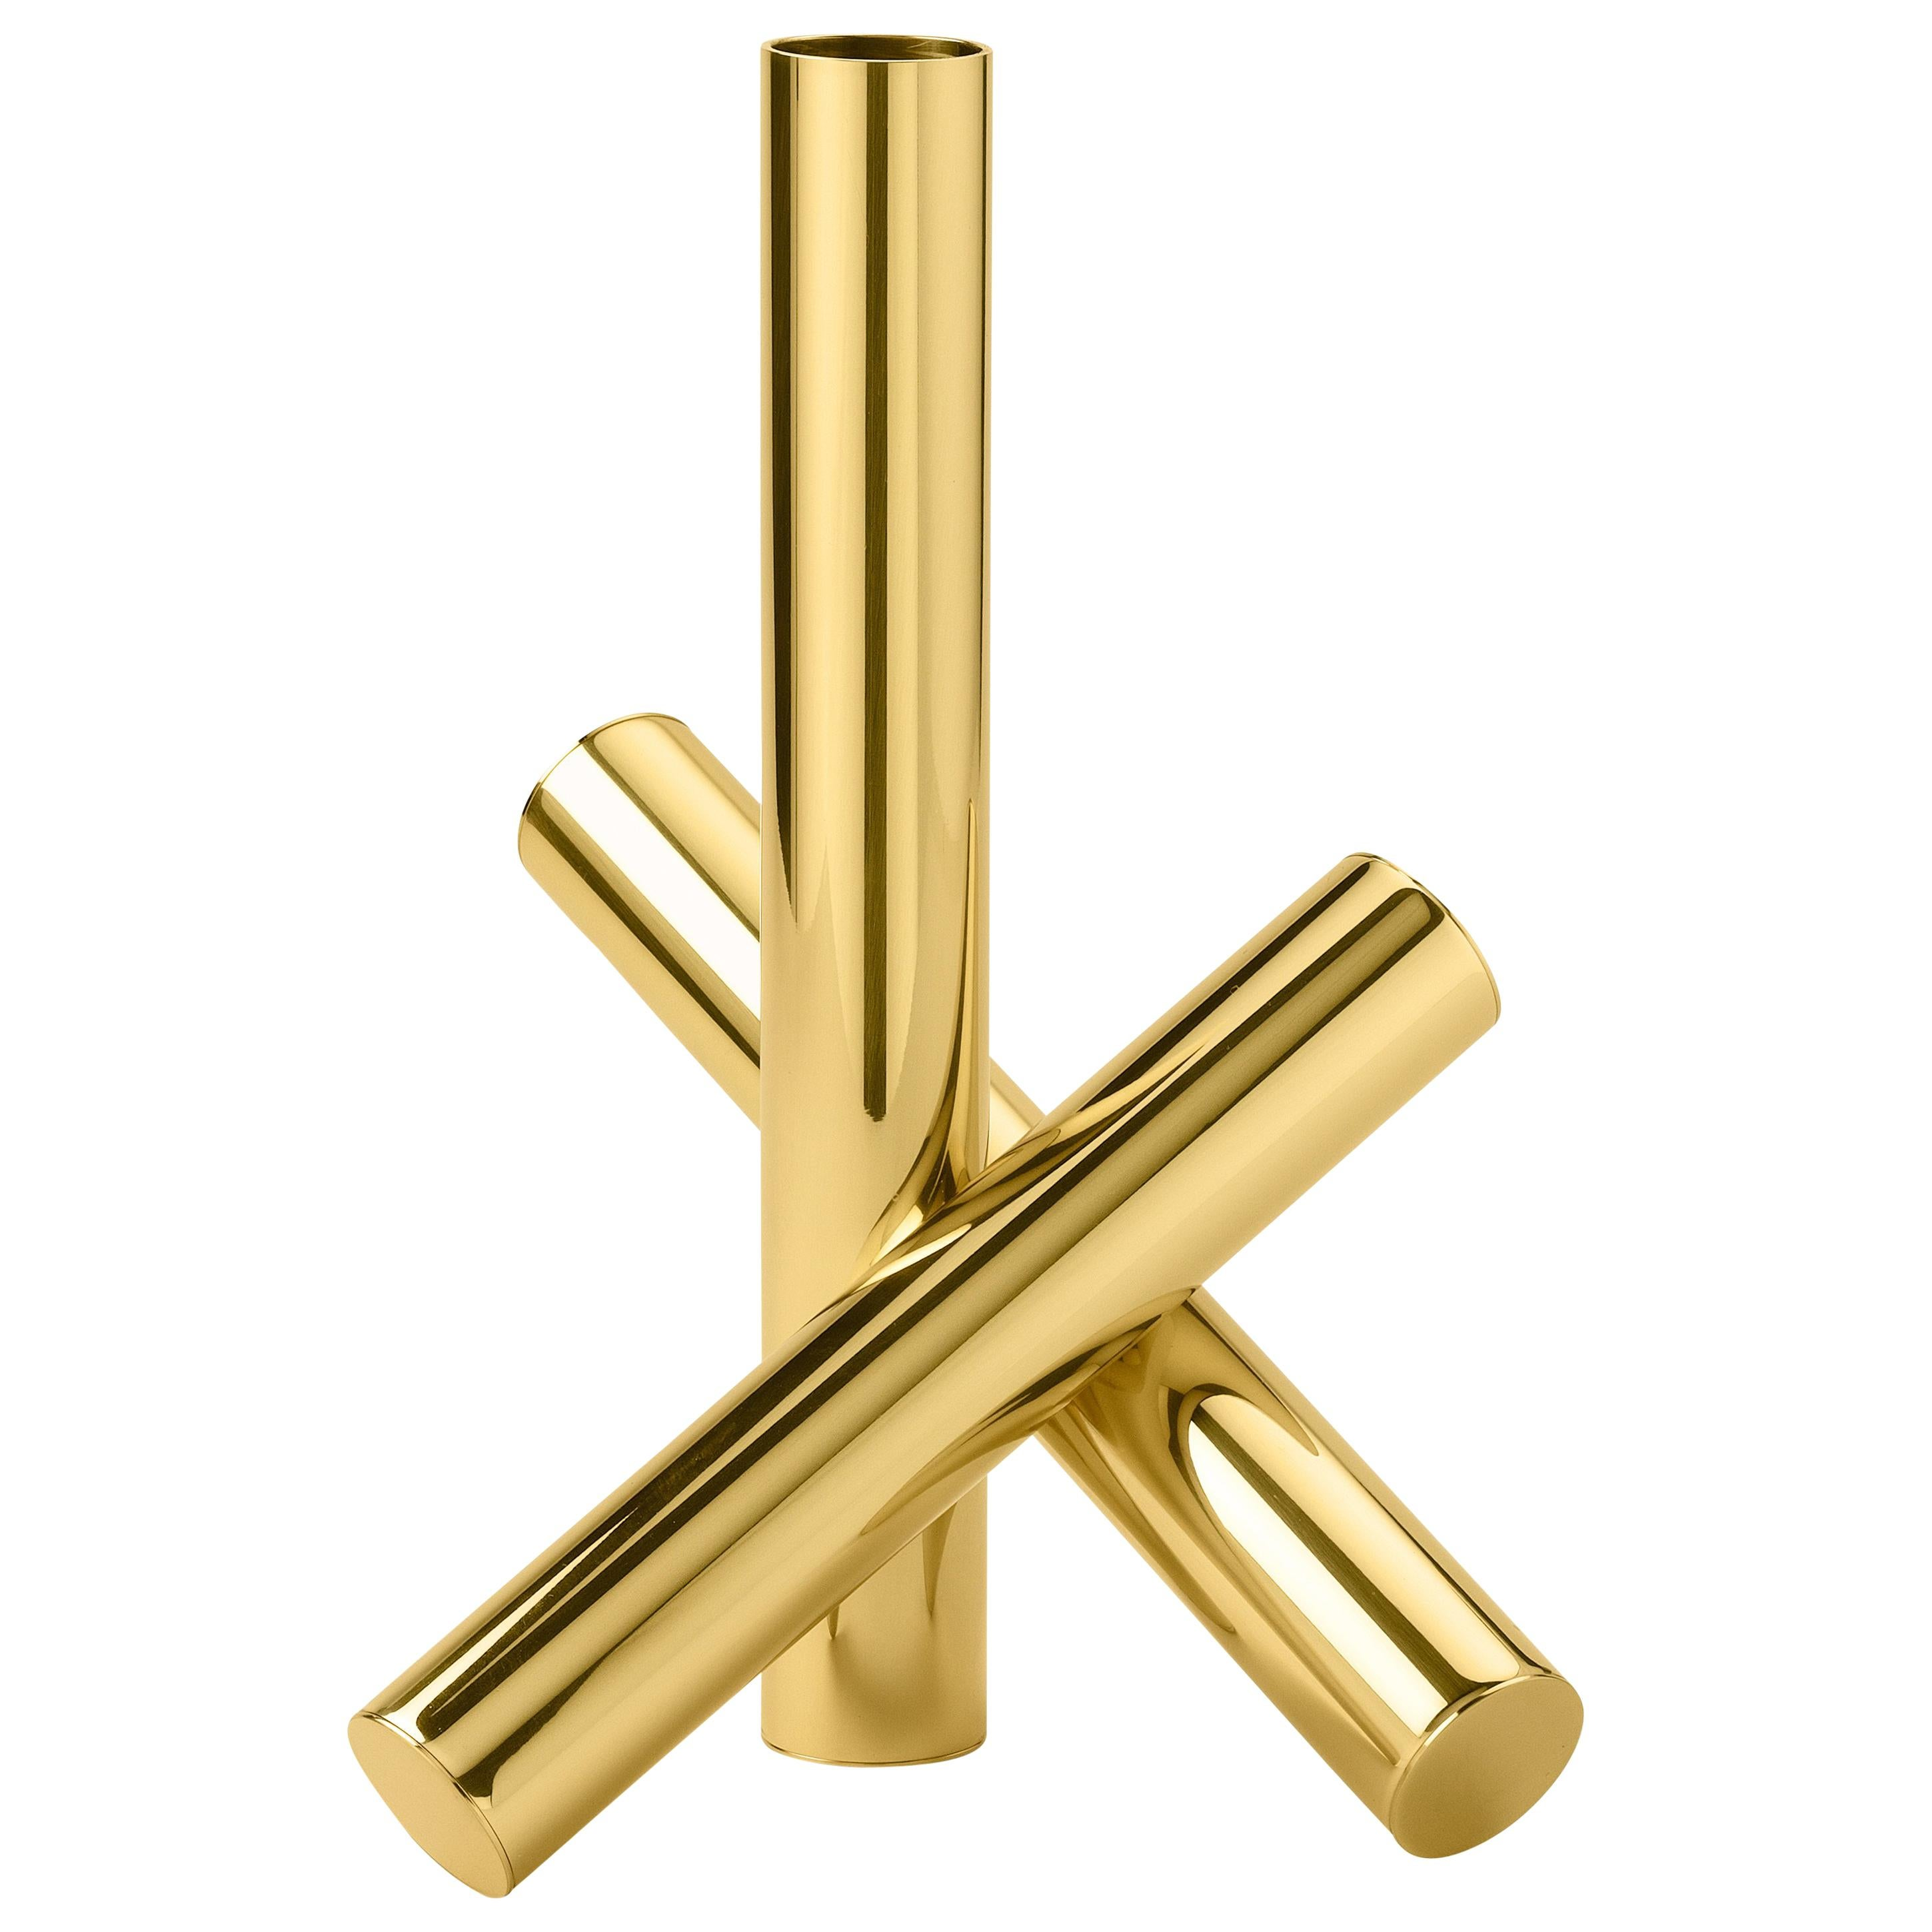 Ghidini 1961 Sticks Candleholder in Polished Brass by Campana Brothers